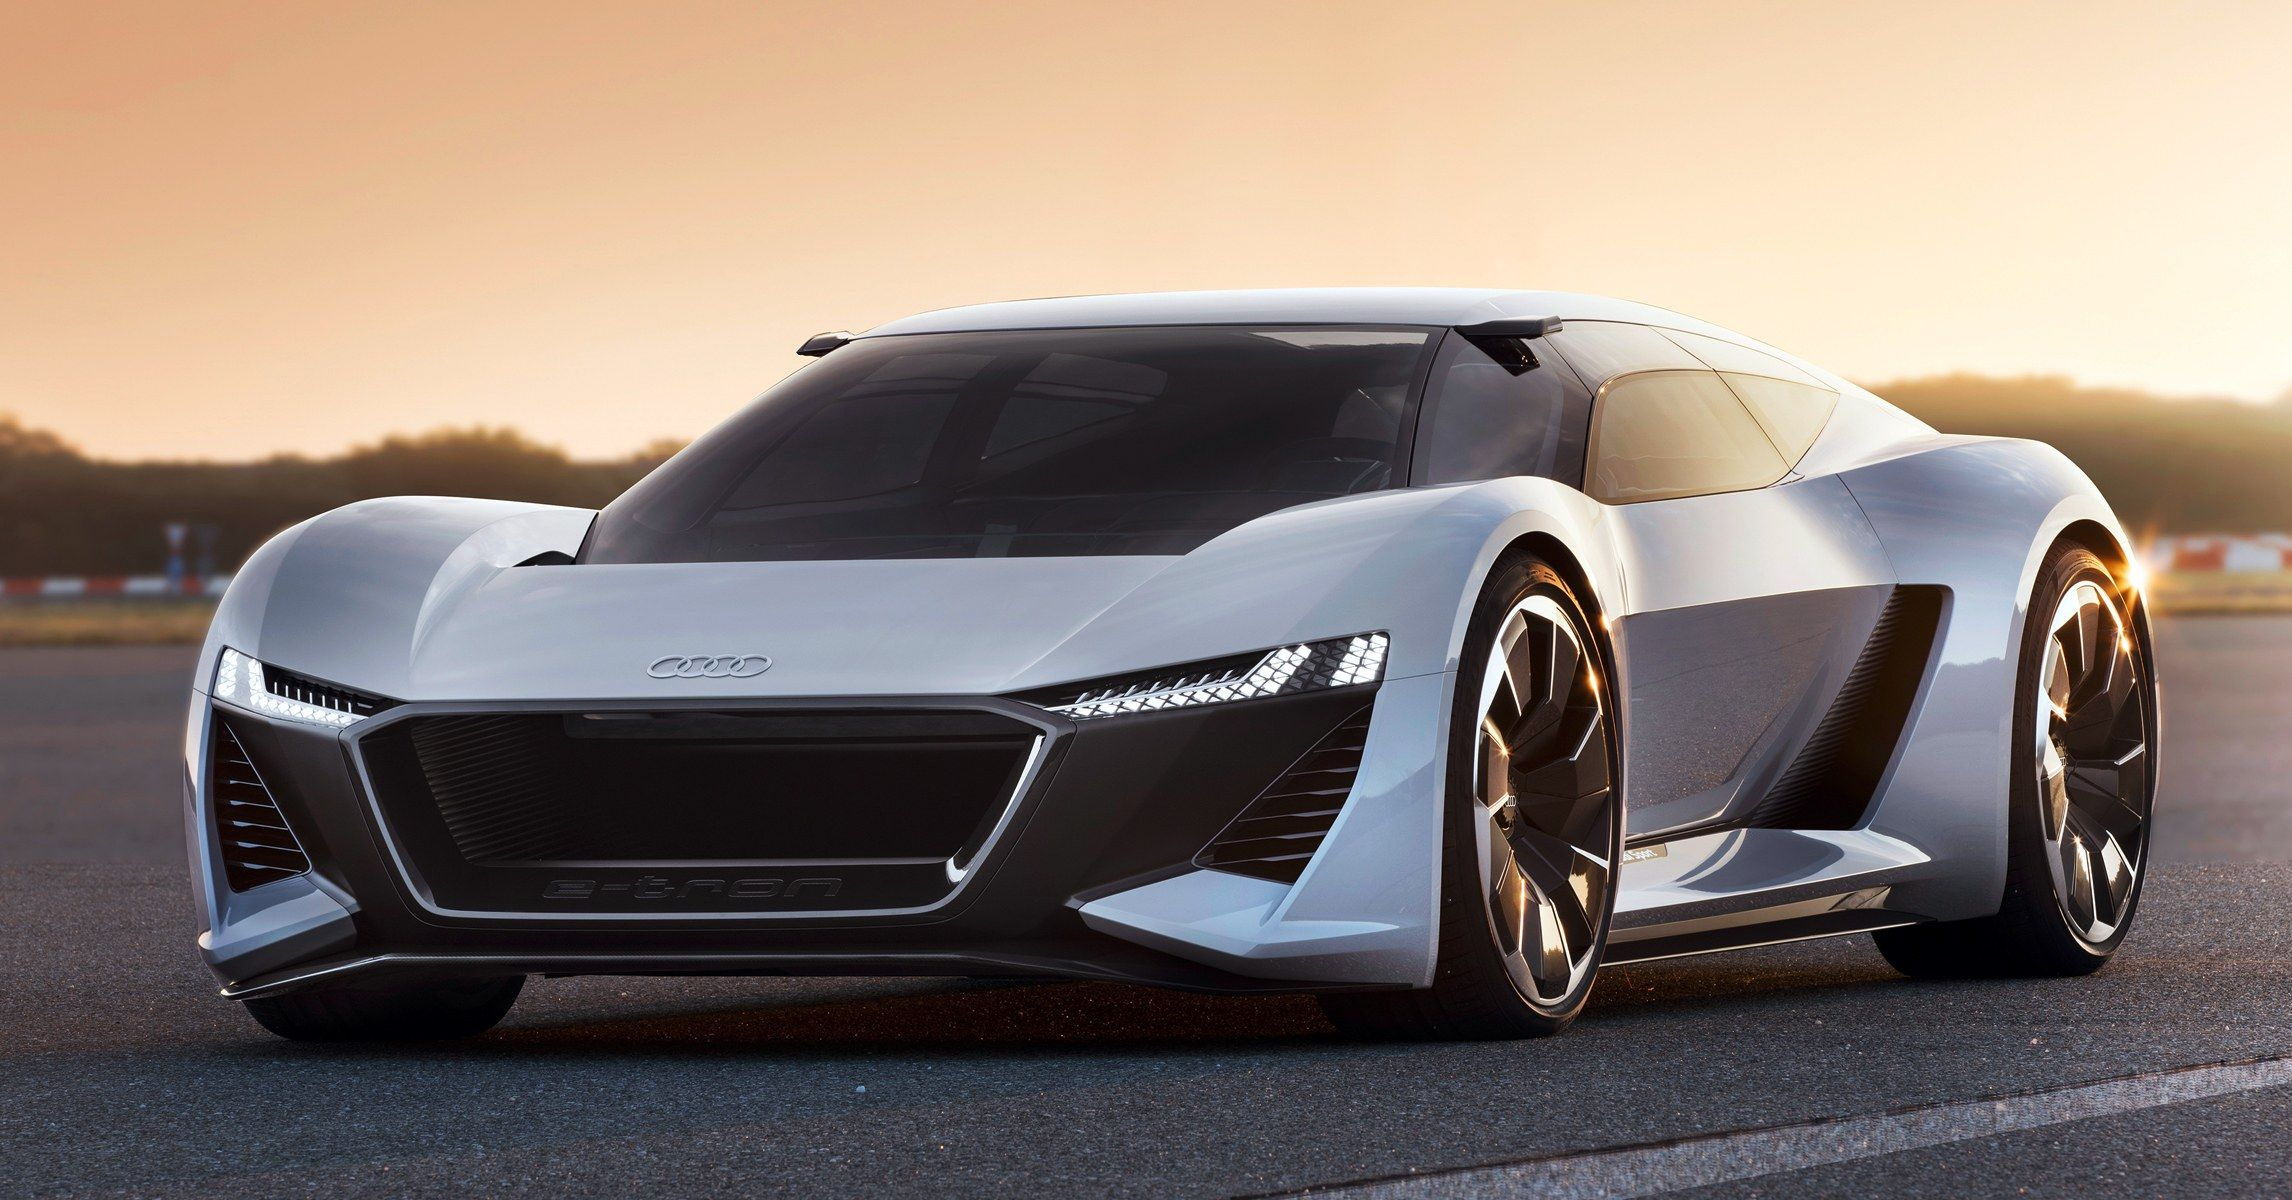 Audi S Blazing Fast Electric Concept Puts The Driver In The Center And Everywhere Else Audi E Tron E Tron Concept Cars